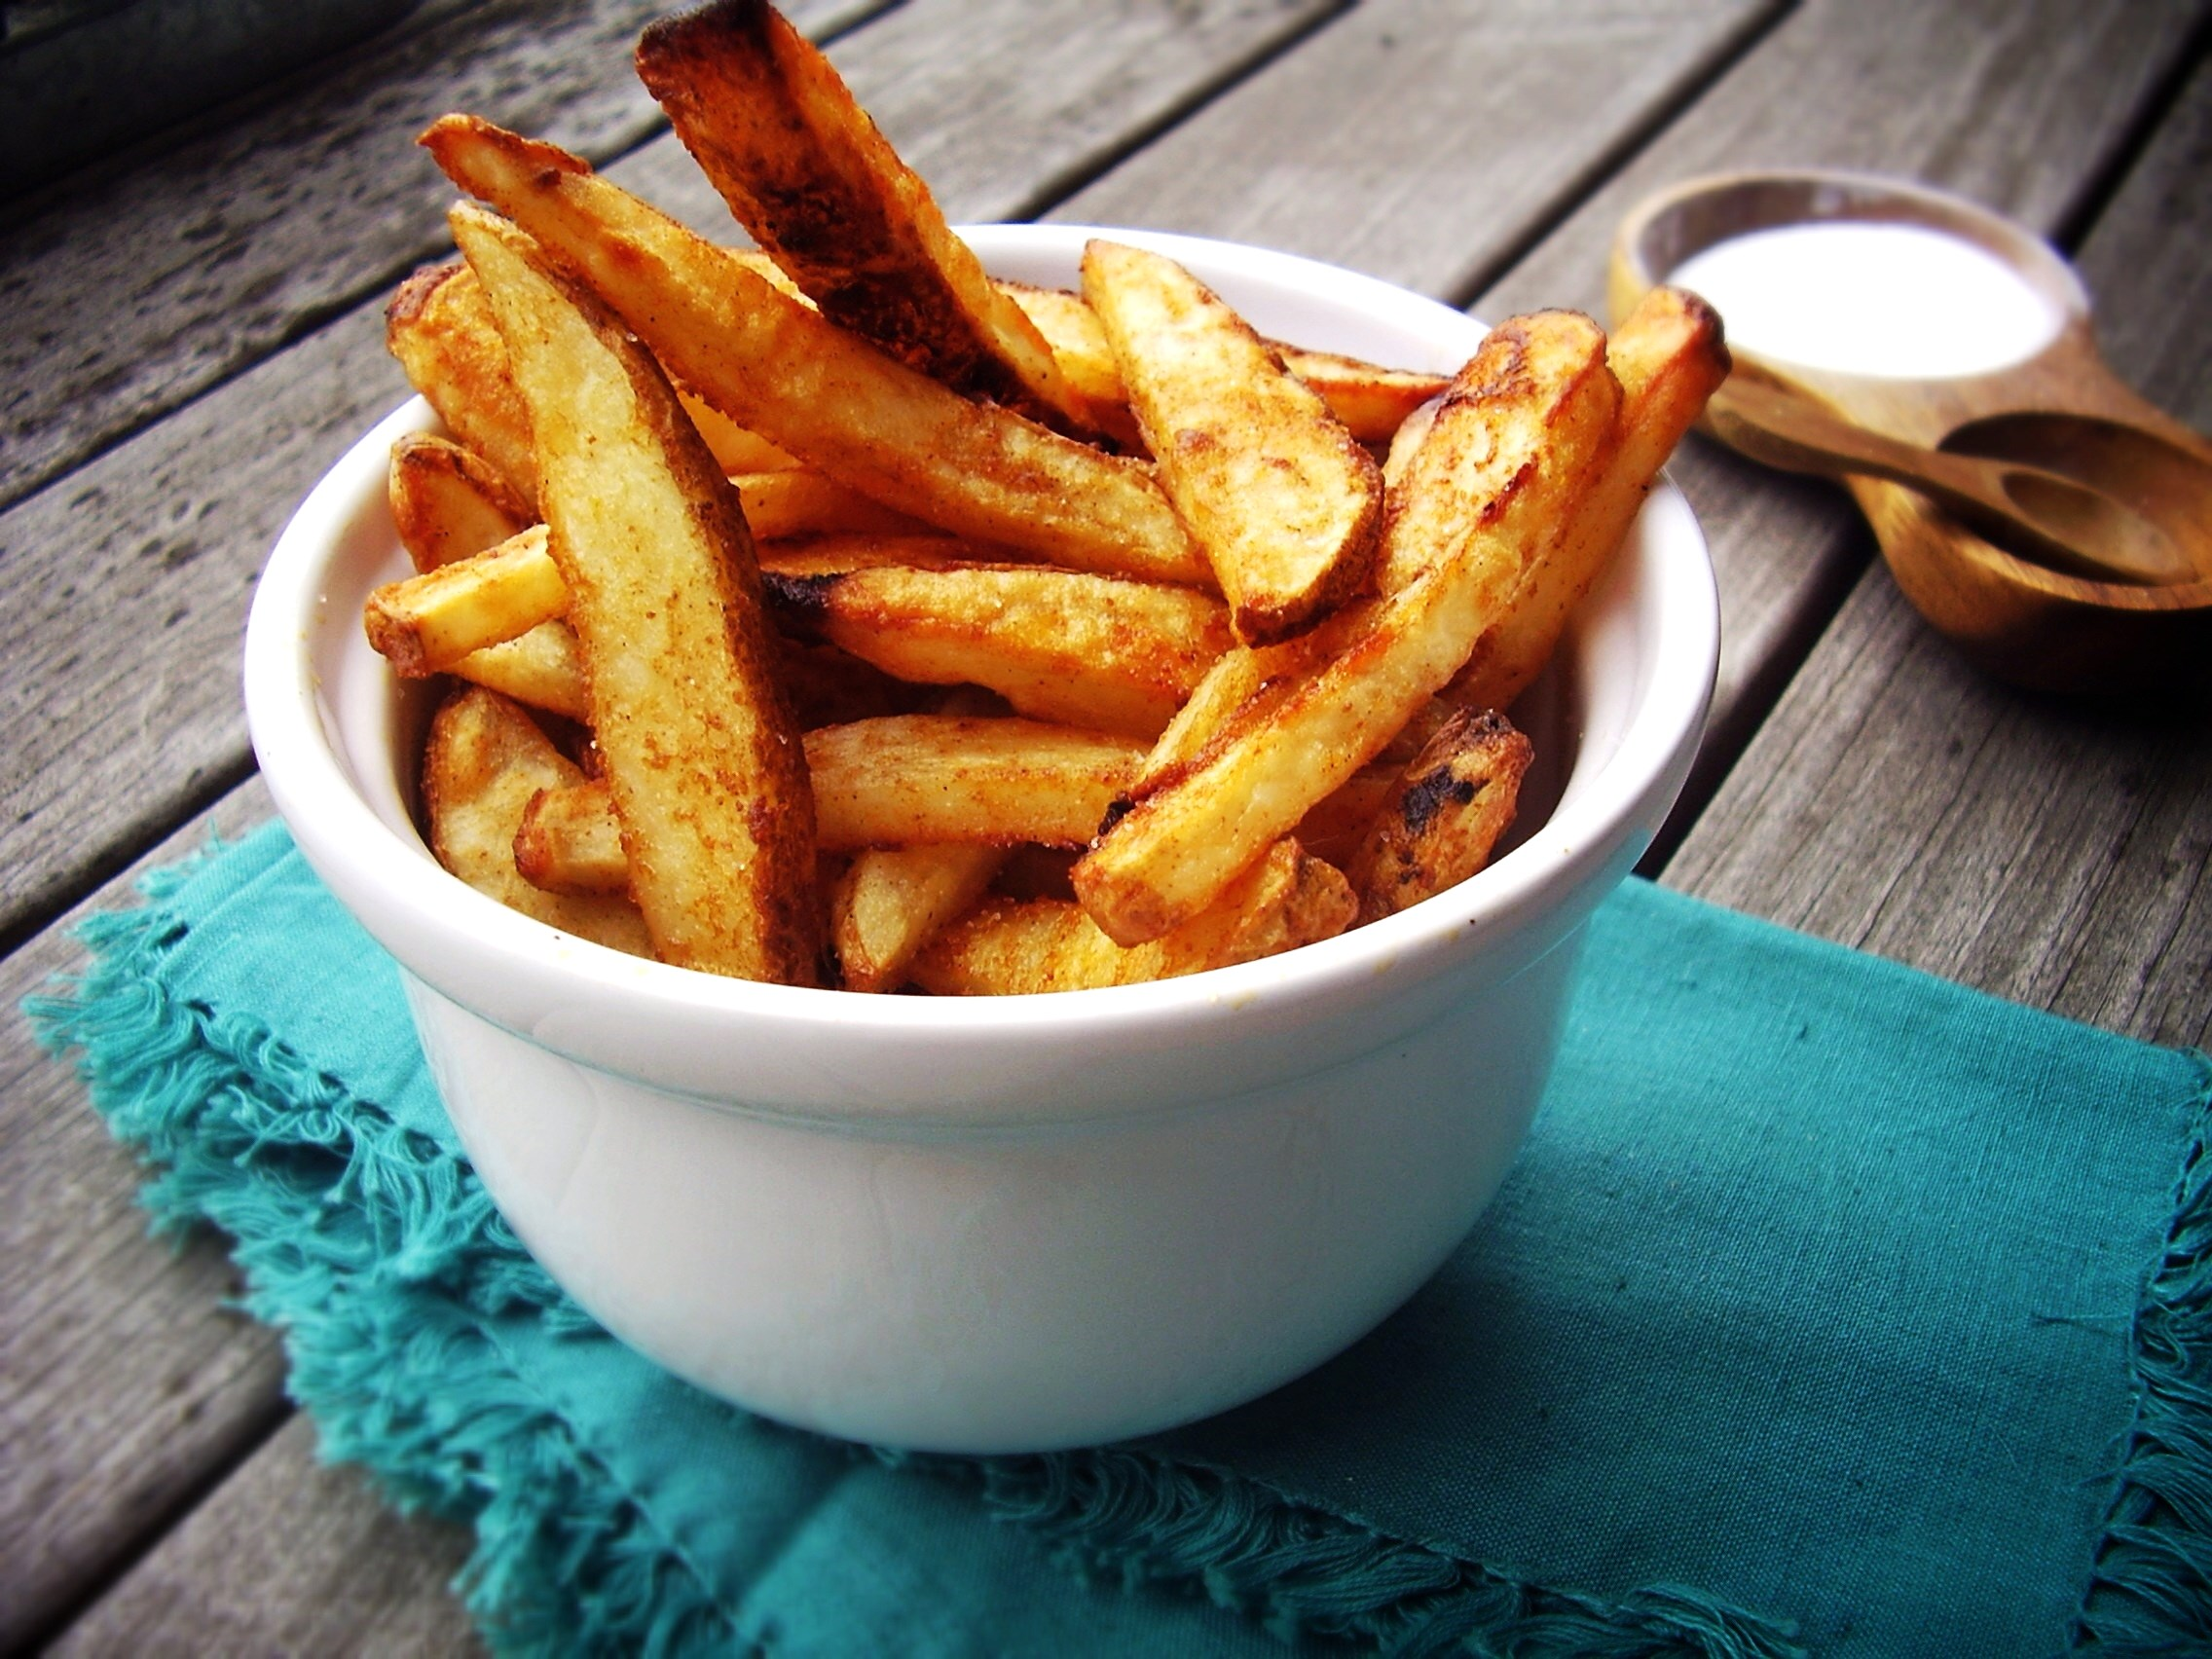 fitter french fries